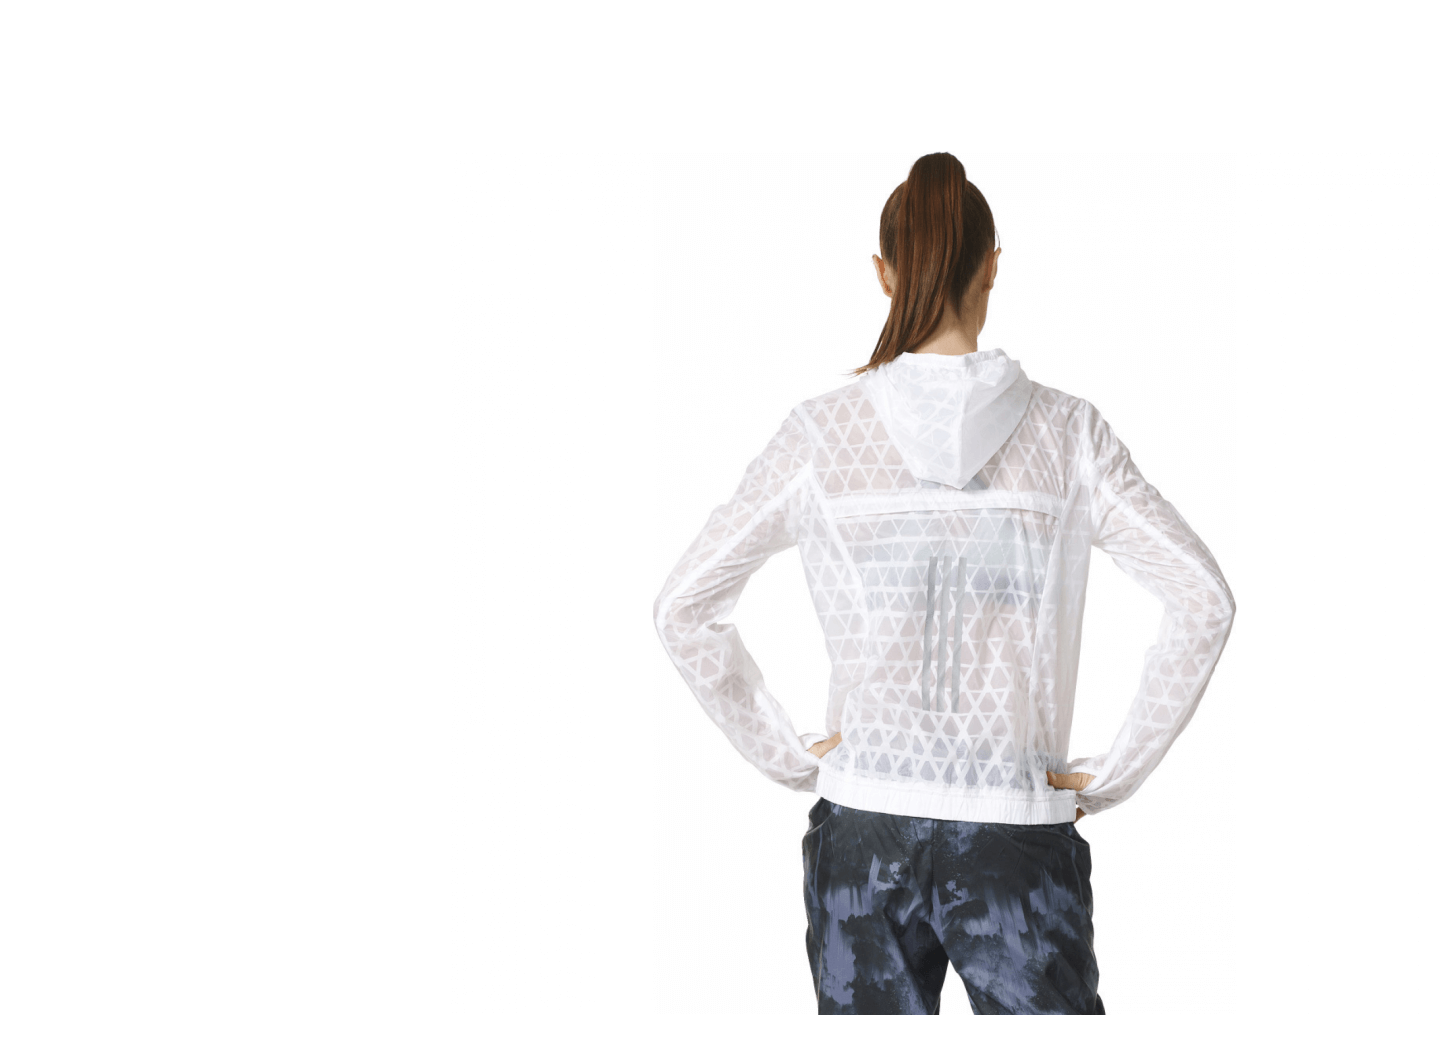 adidas kanoi run transparent damen laufjacke wei grau im online shop von keller sports kaufen. Black Bedroom Furniture Sets. Home Design Ideas